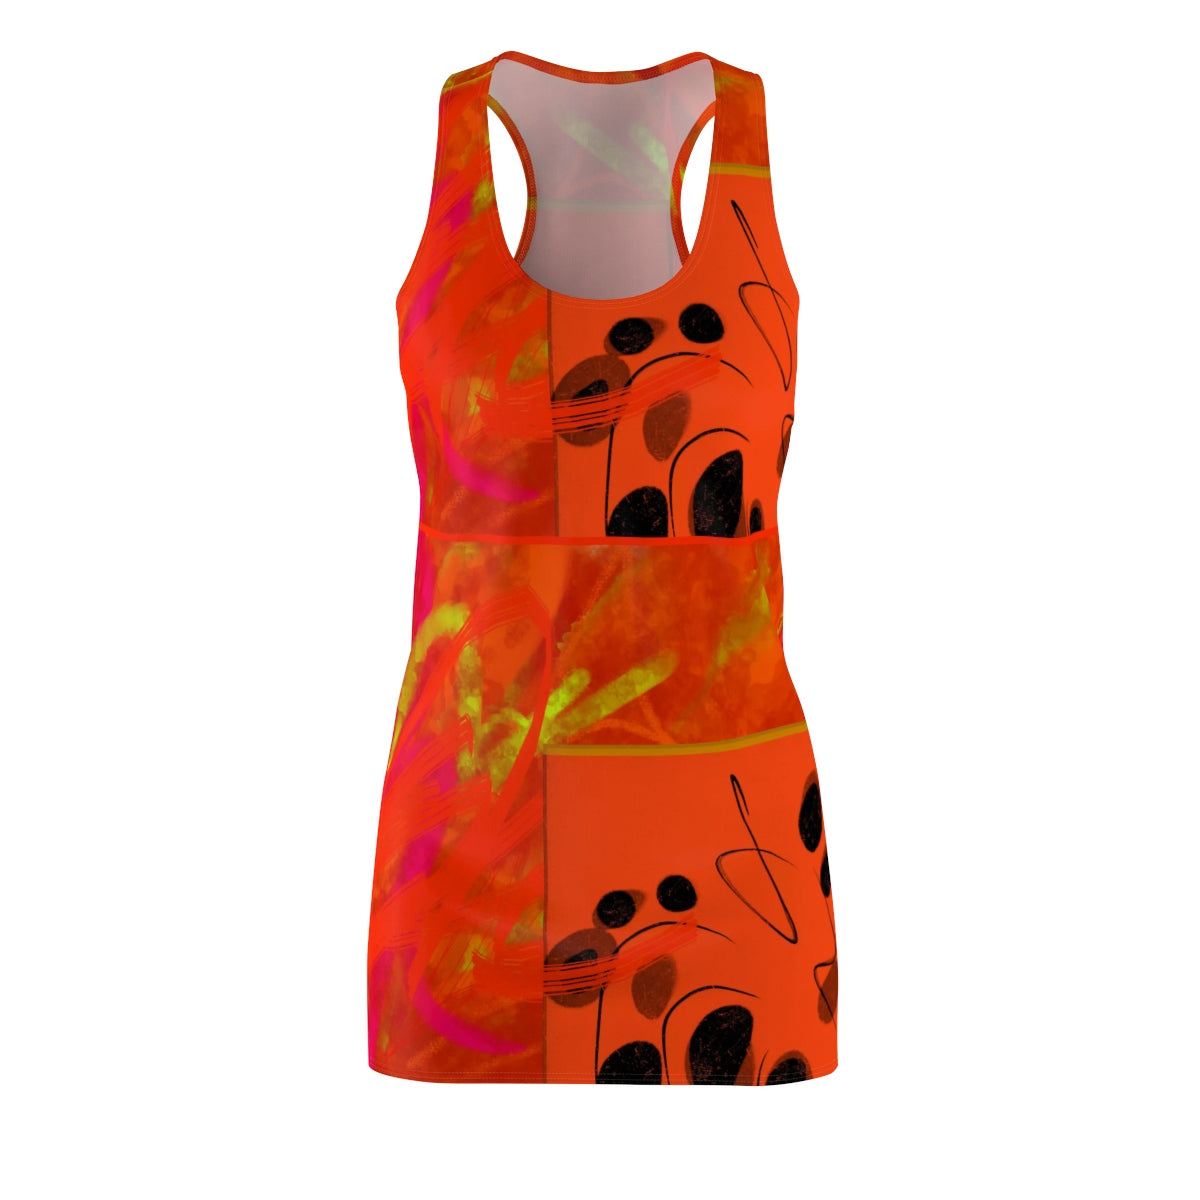 Sacral Chakra Women's Cut & Sew Racerback Dress - Kirsteinfineart